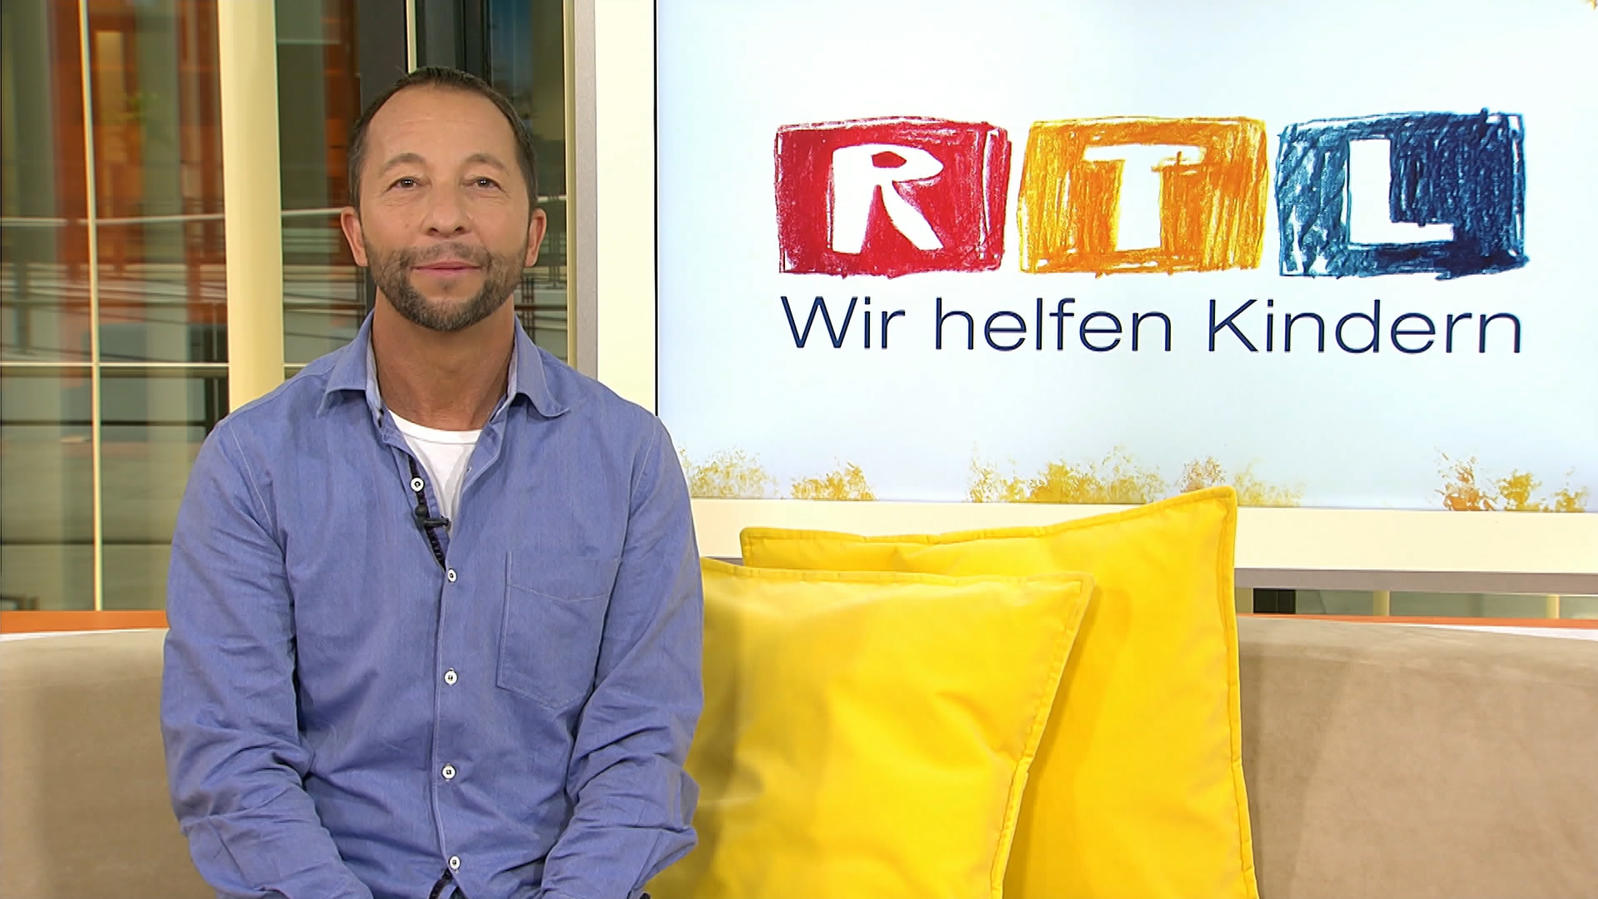 rtl spendenmarathon auktion dj bobo versteigert vip tickets und meet rtl online dj. Black Bedroom Furniture Sets. Home Design Ideas